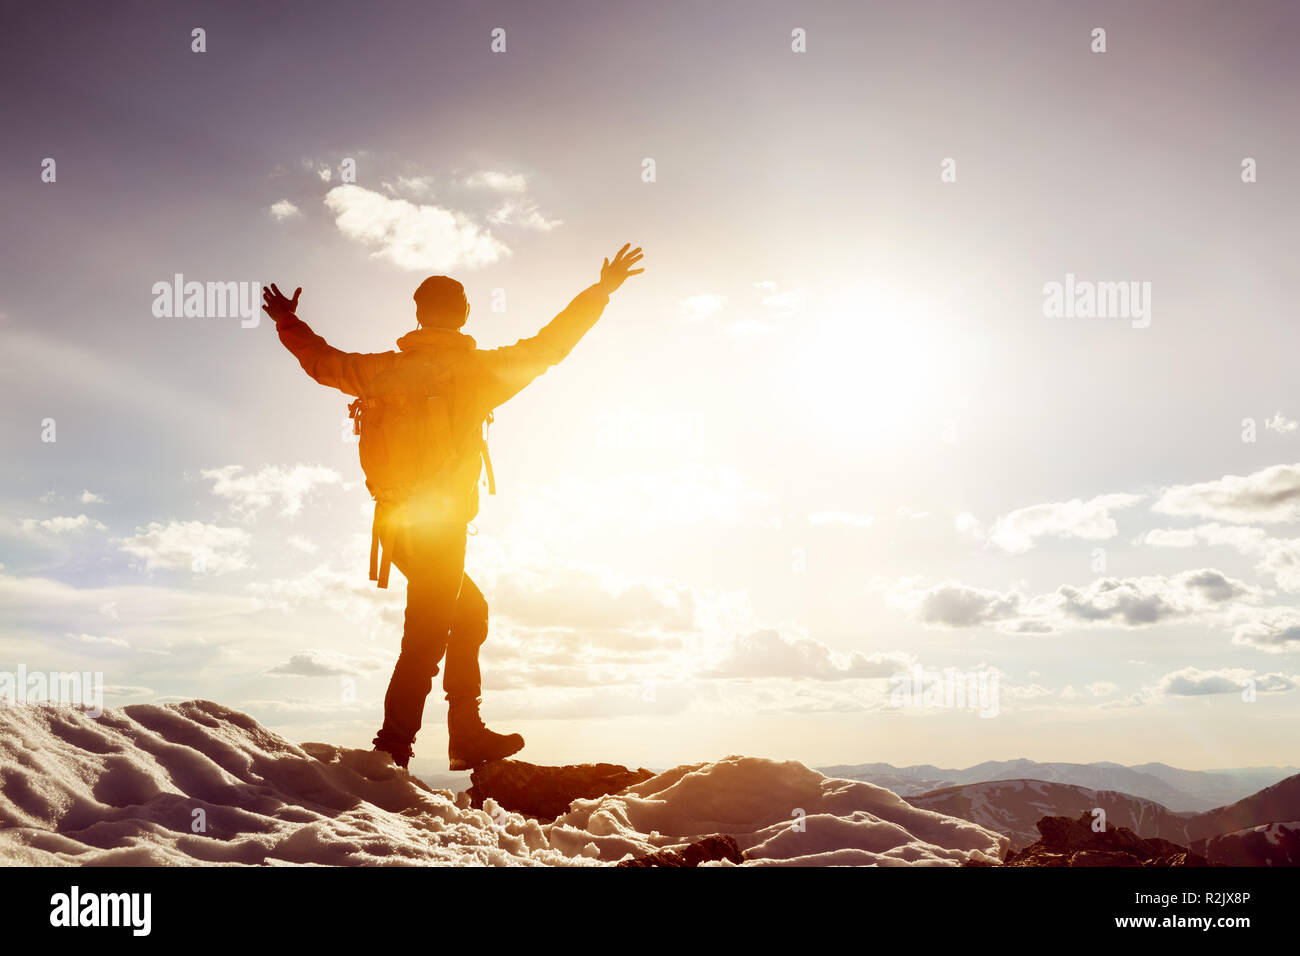 Man stands in winner pose with raised arms on mountain top. Trekking or win concept Stock Photo